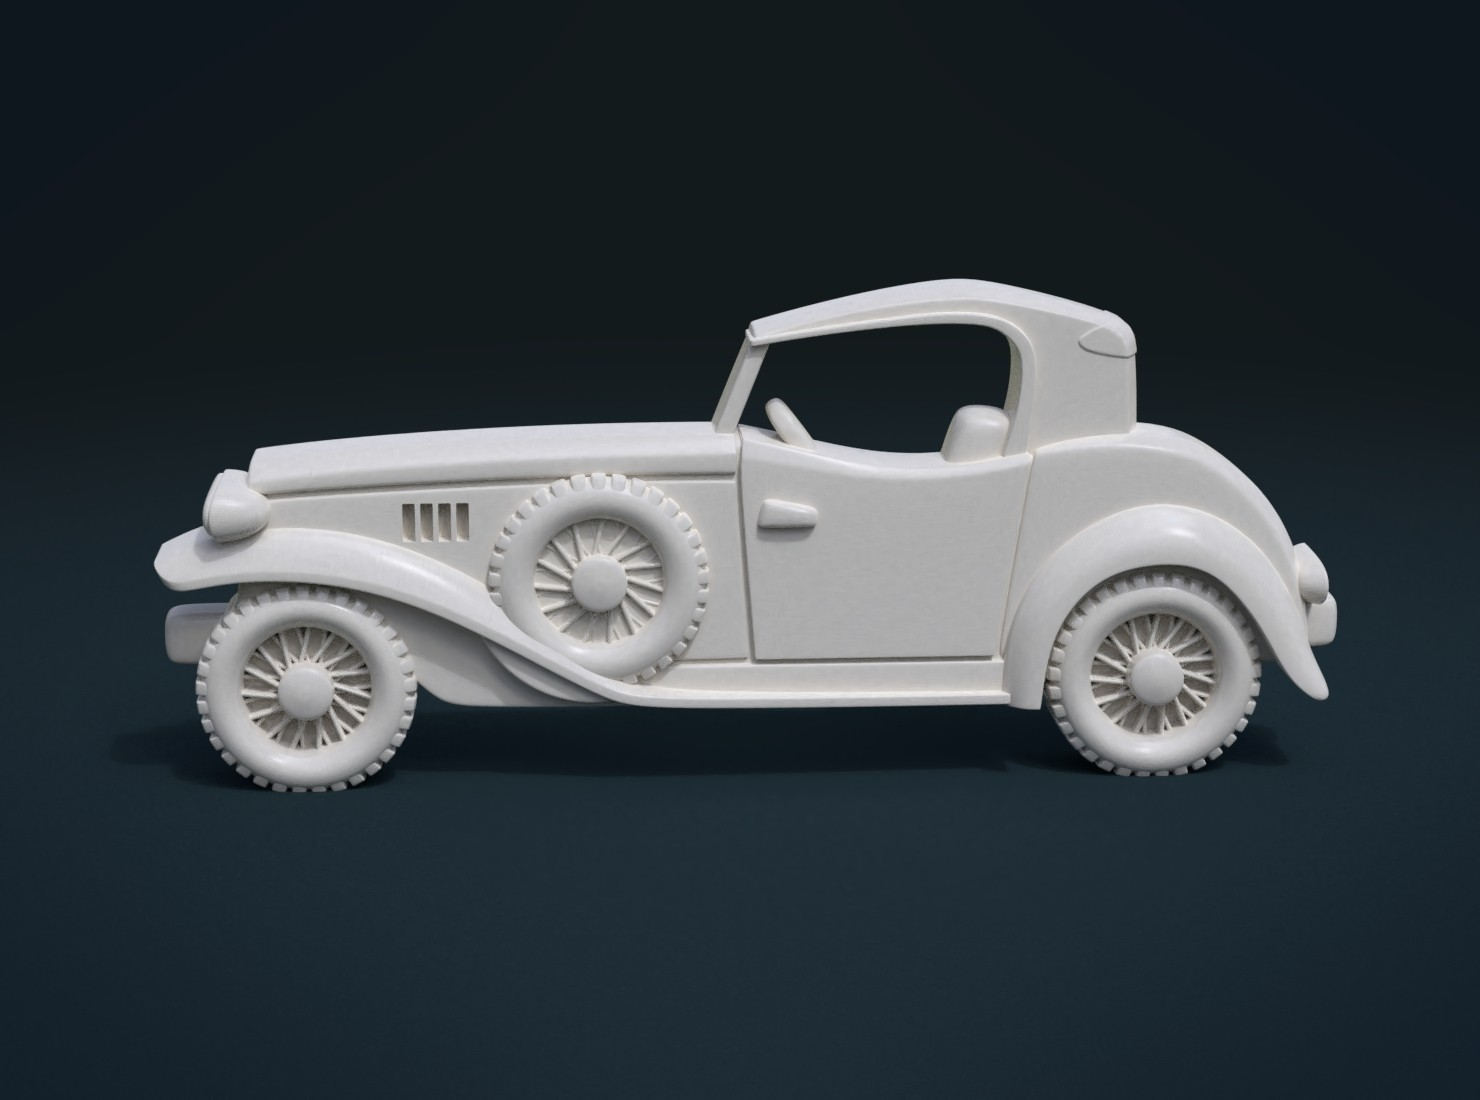 Car_Cycles-02.jpg Download STL file Car Relief • Design to 3D print, Skazok